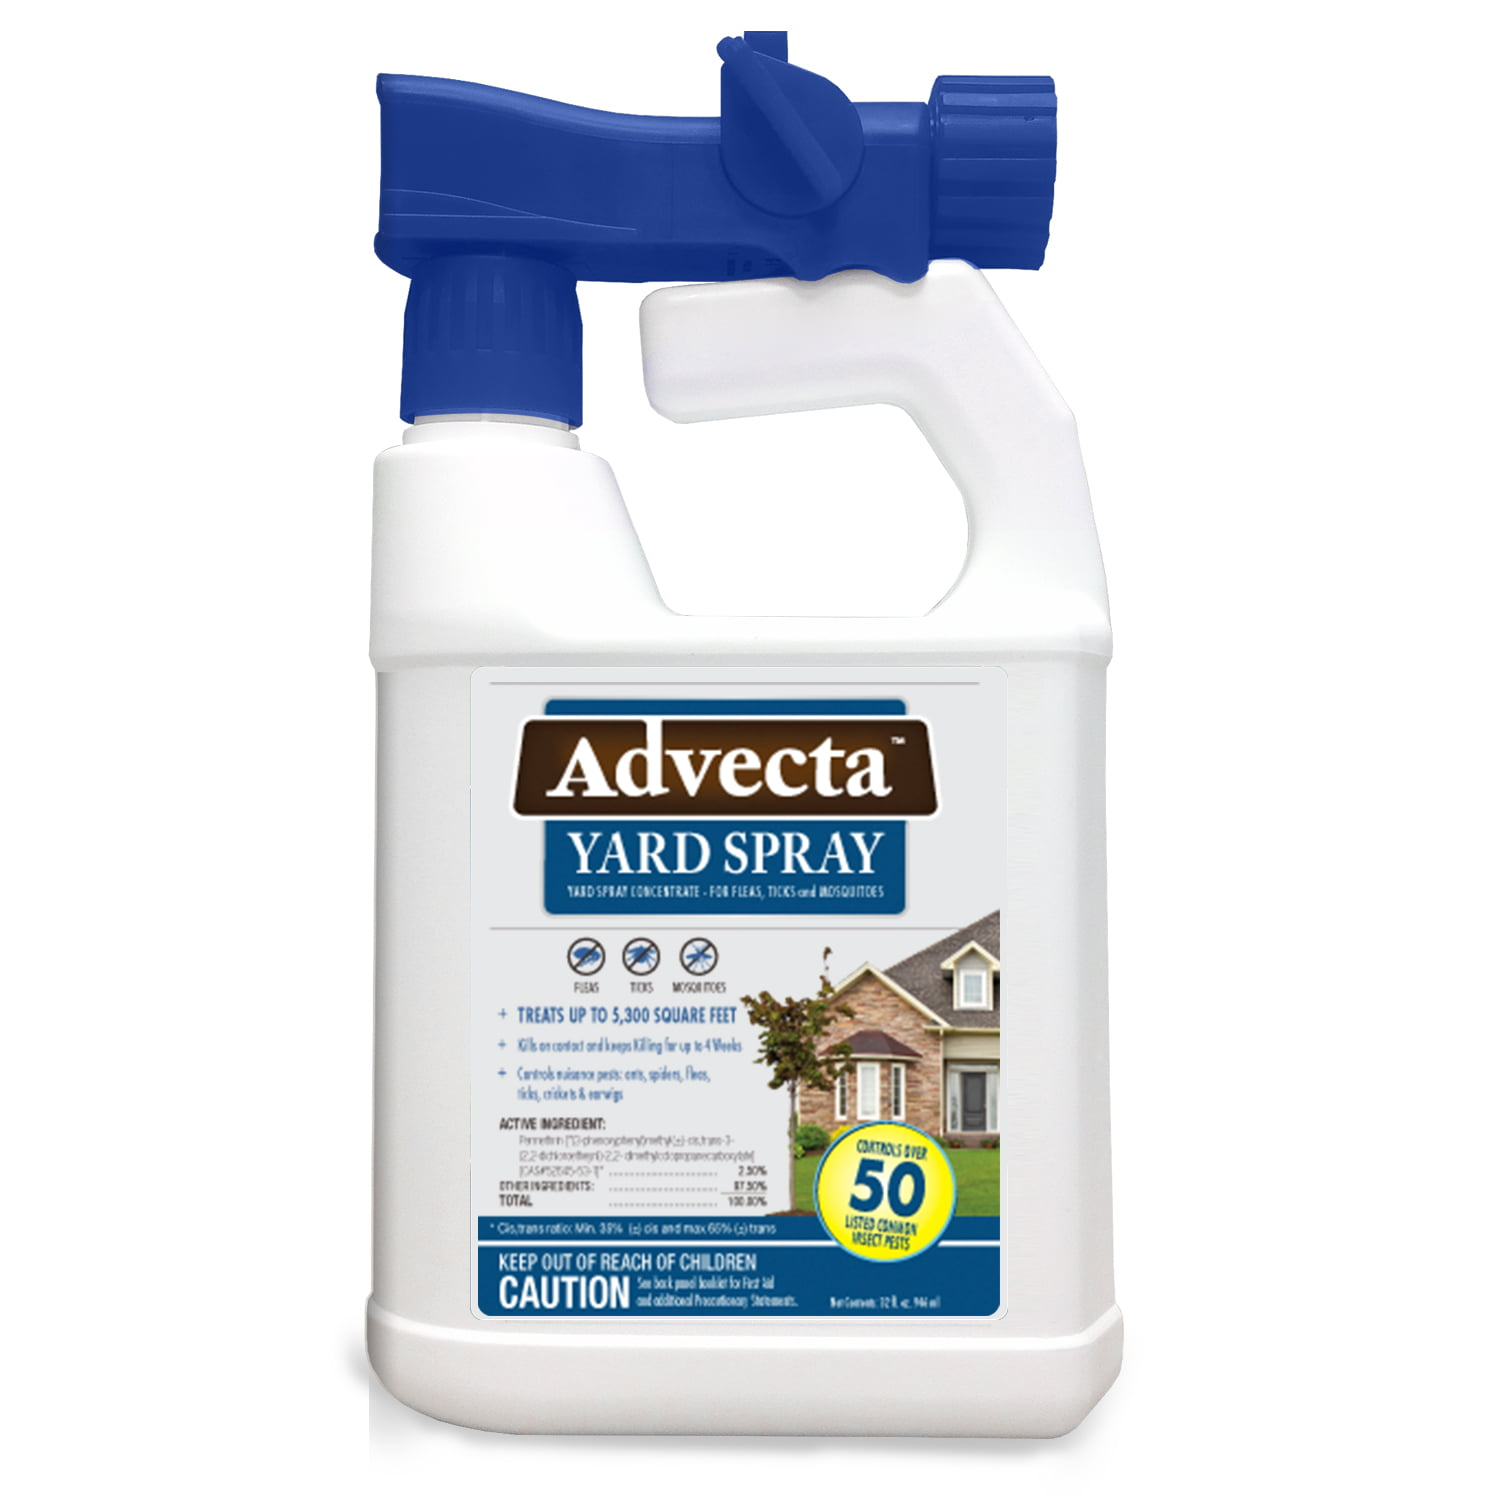 Advecta Flea Tick And Mosquito Yard Treatment Spray For Fleas Tickosquitoes 32oz